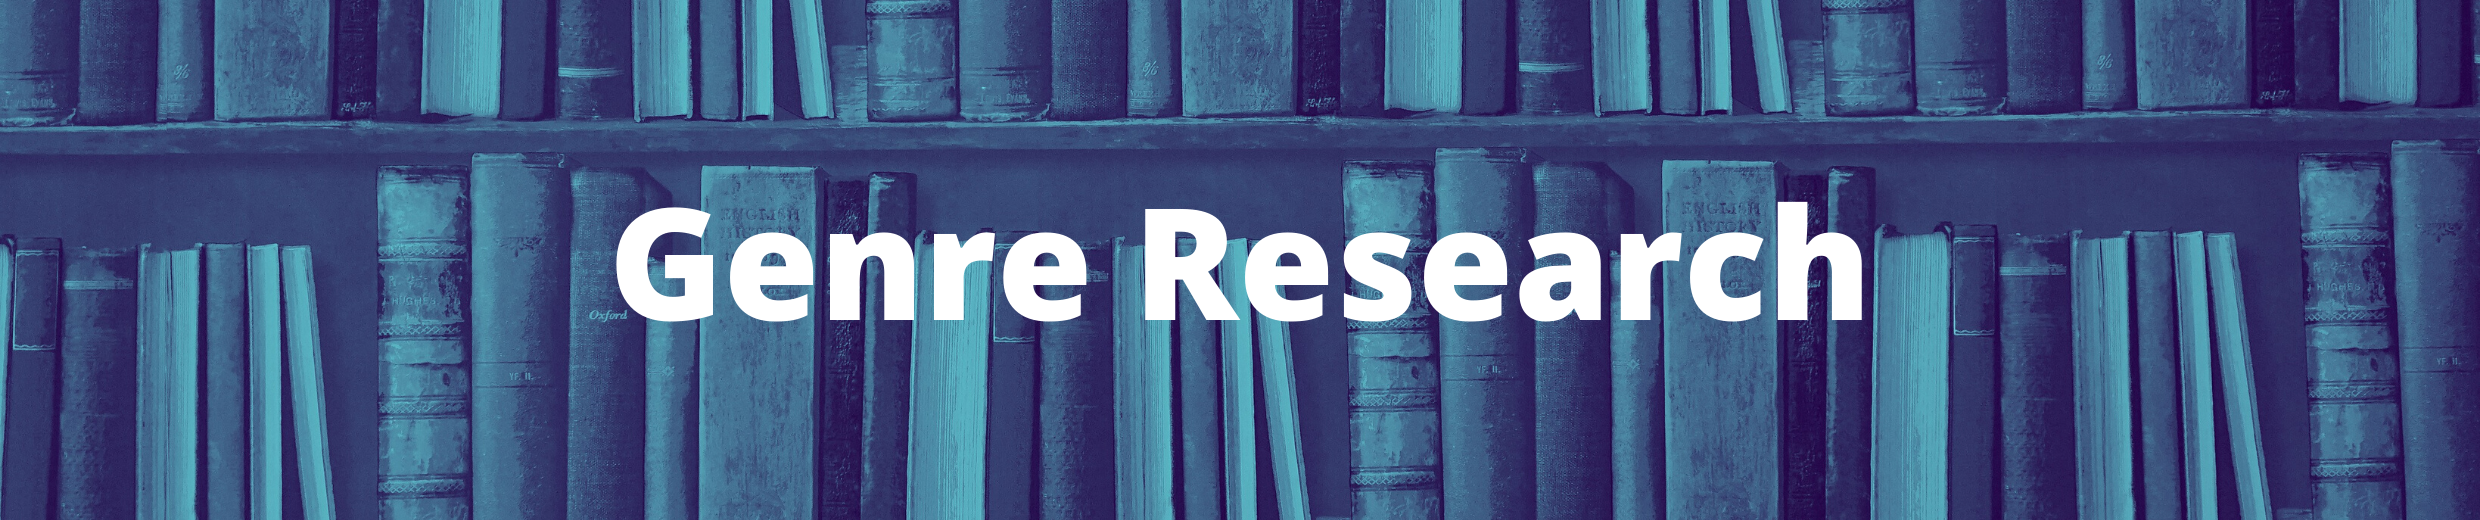 Banner with bookshelf and text Genre Research